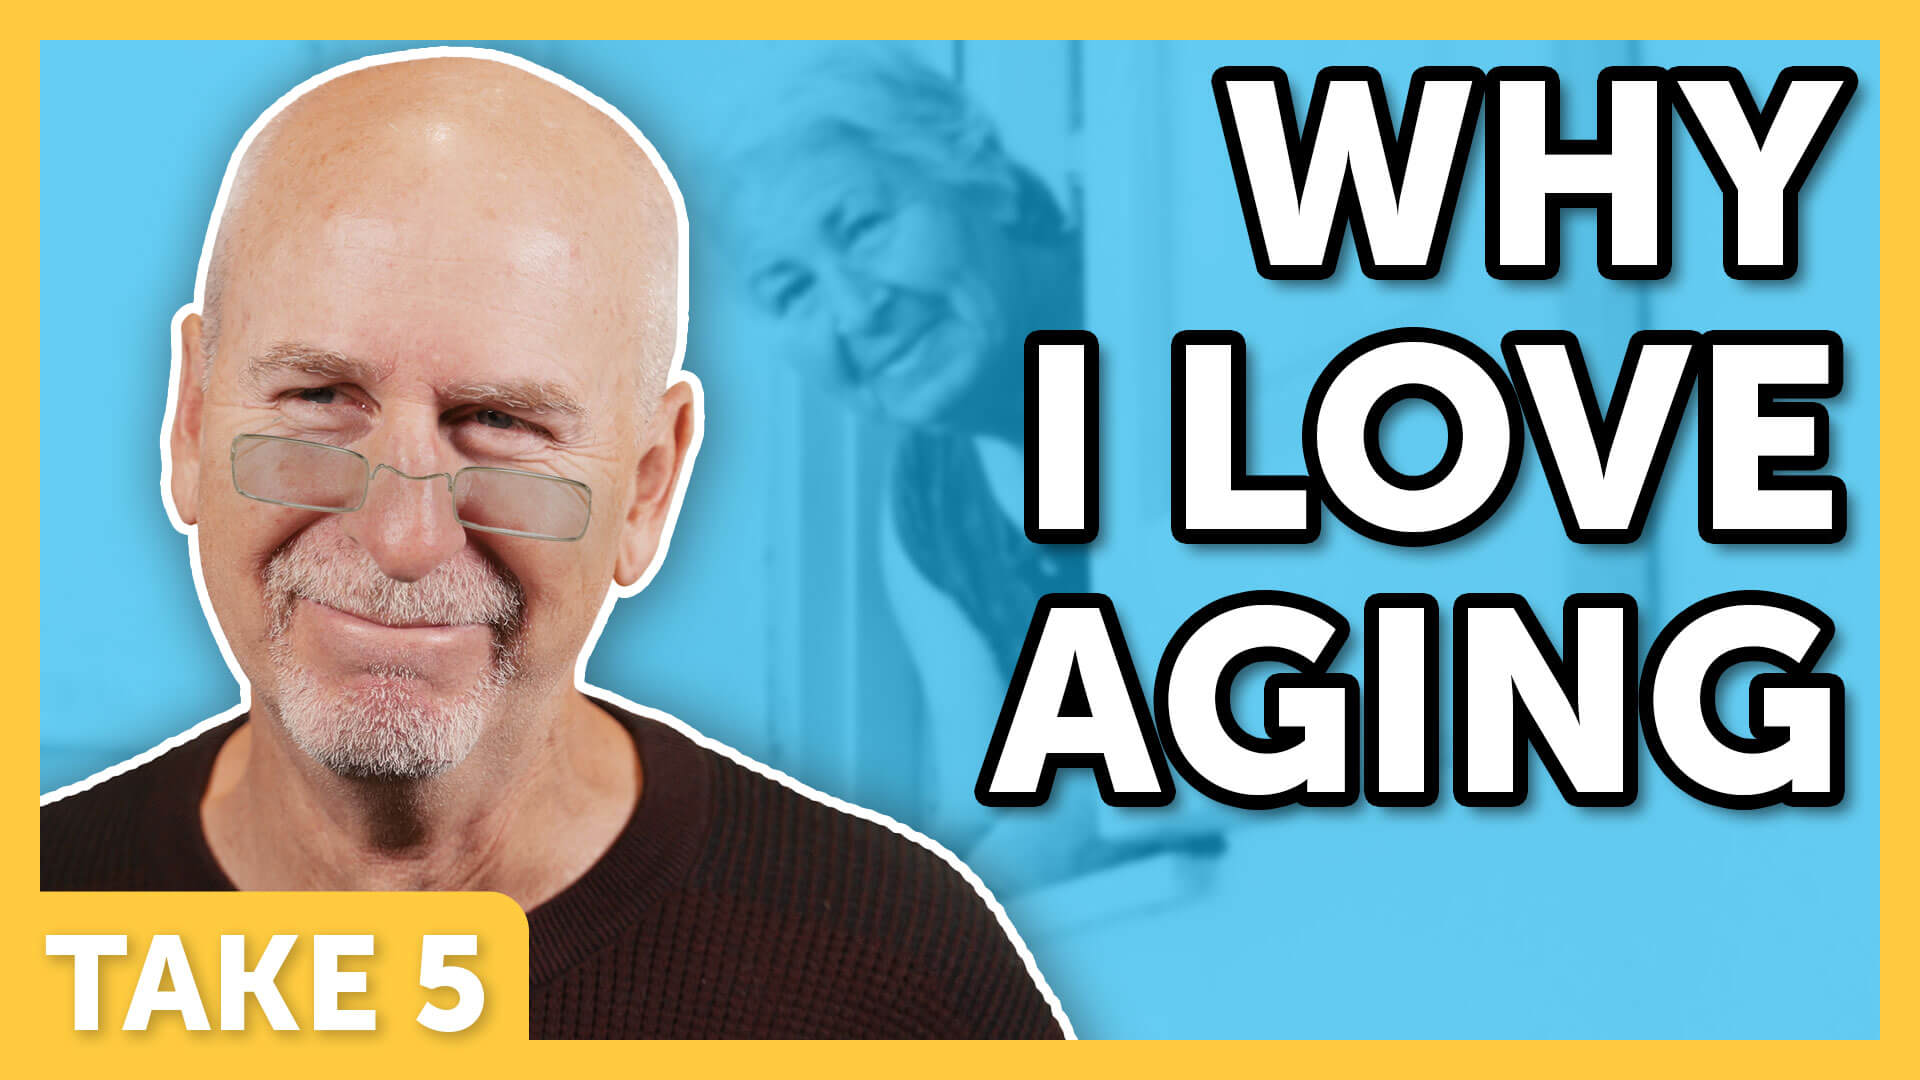 Why I Love Aging - Laugh Again Take 5 with Phil Callaway | Laugh Again TV